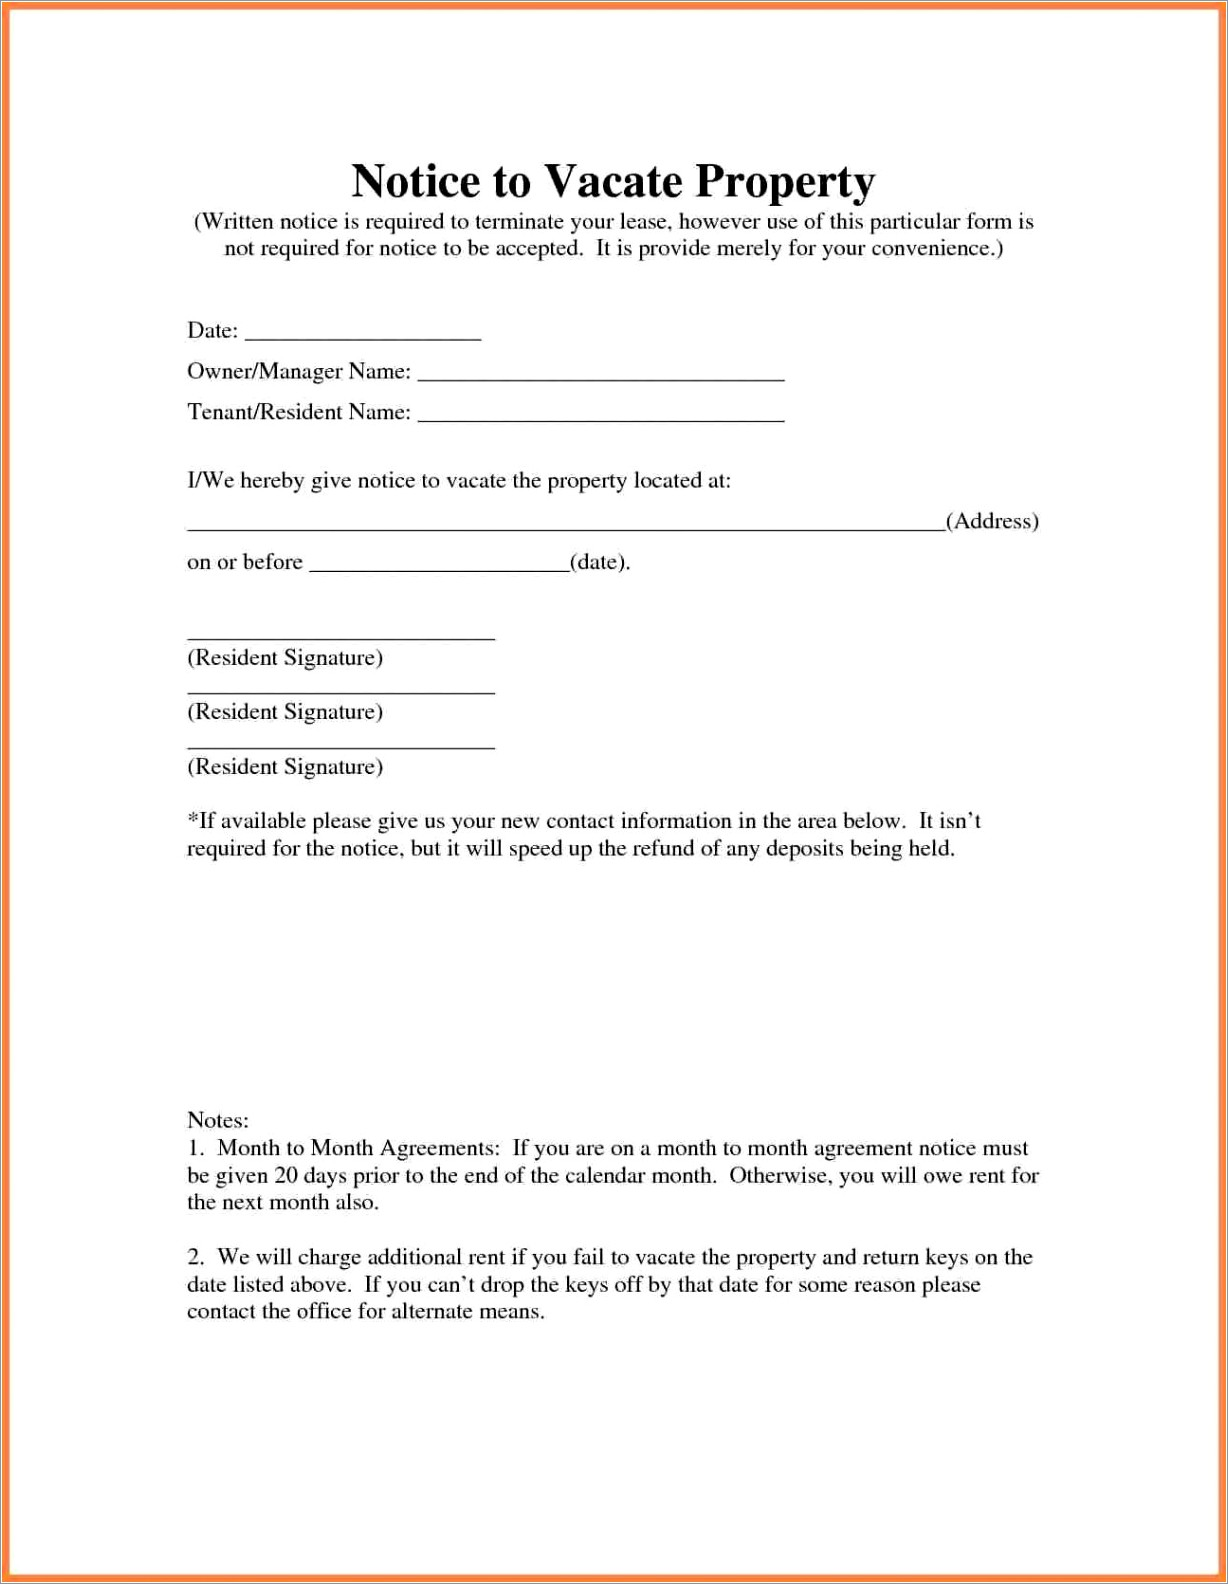 Landlord To Tenant Letter To Vacate